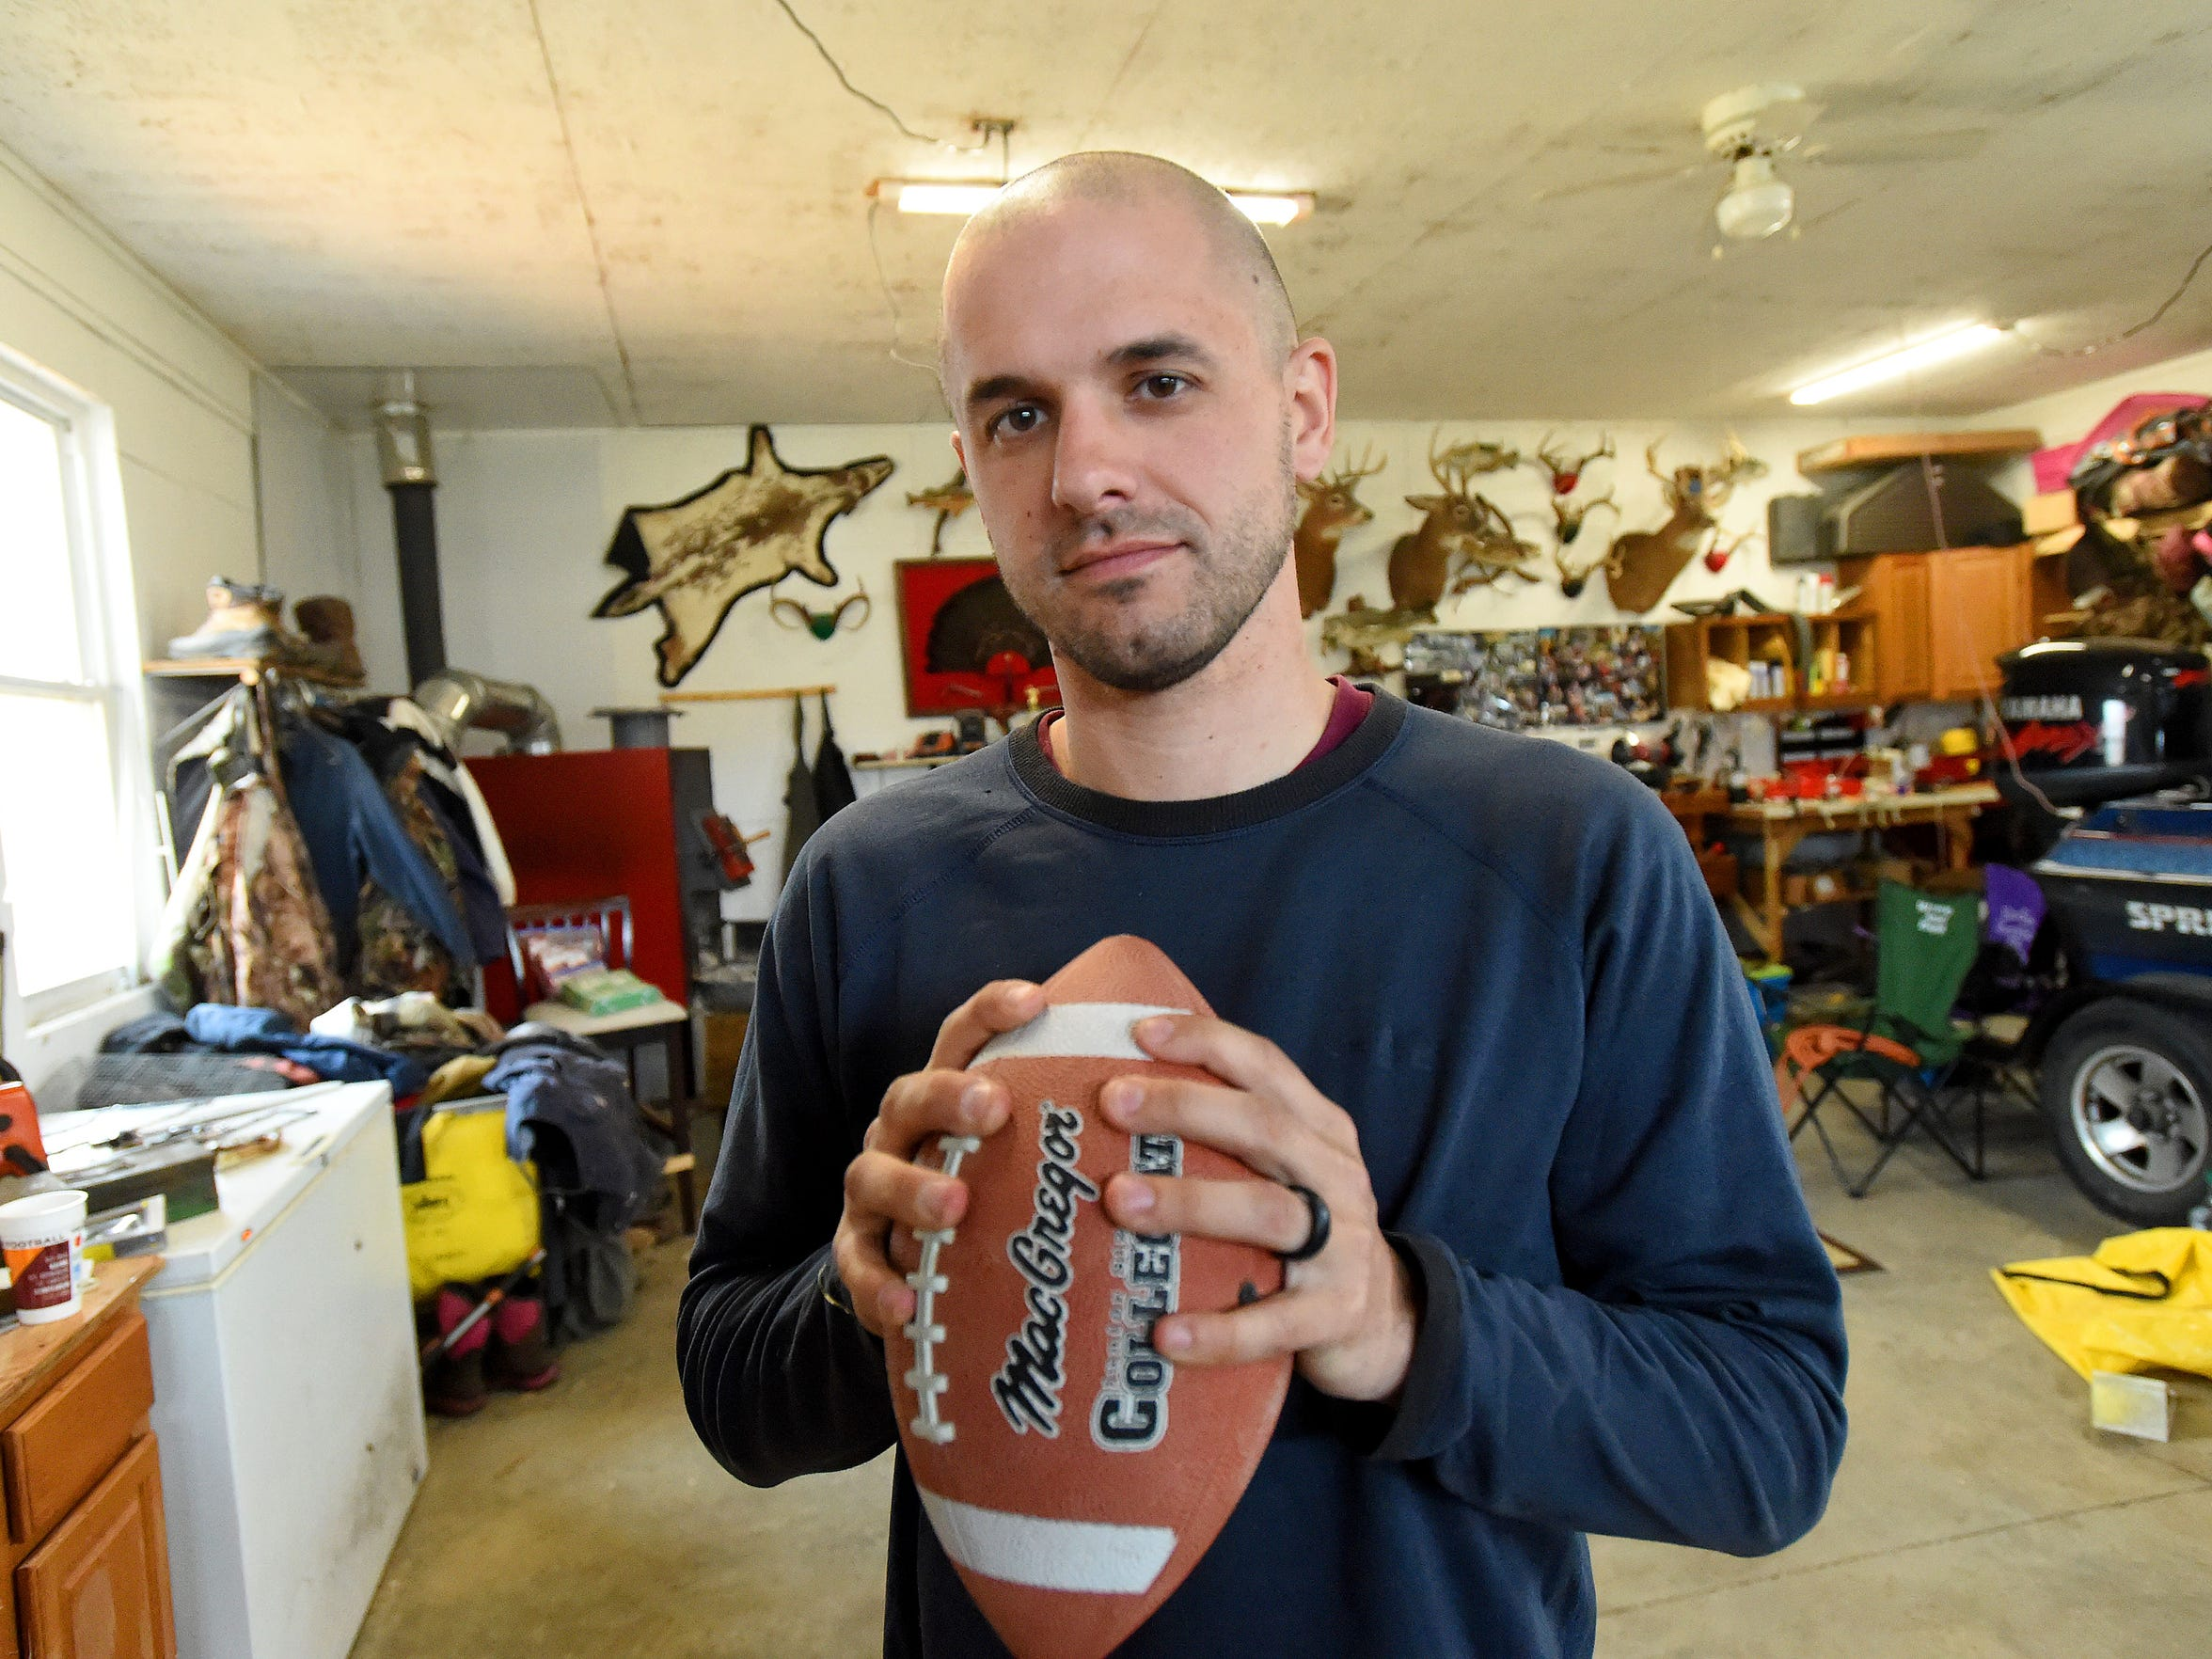 Ryan Rathburn suffered three concussions while playing football at the school. One occurred playing junior varsity football in 2003 with a second during a varsity game in 2005 and a third in practice that same year. He is photographed in Lyndhurst on Monday, March 20, 2017.